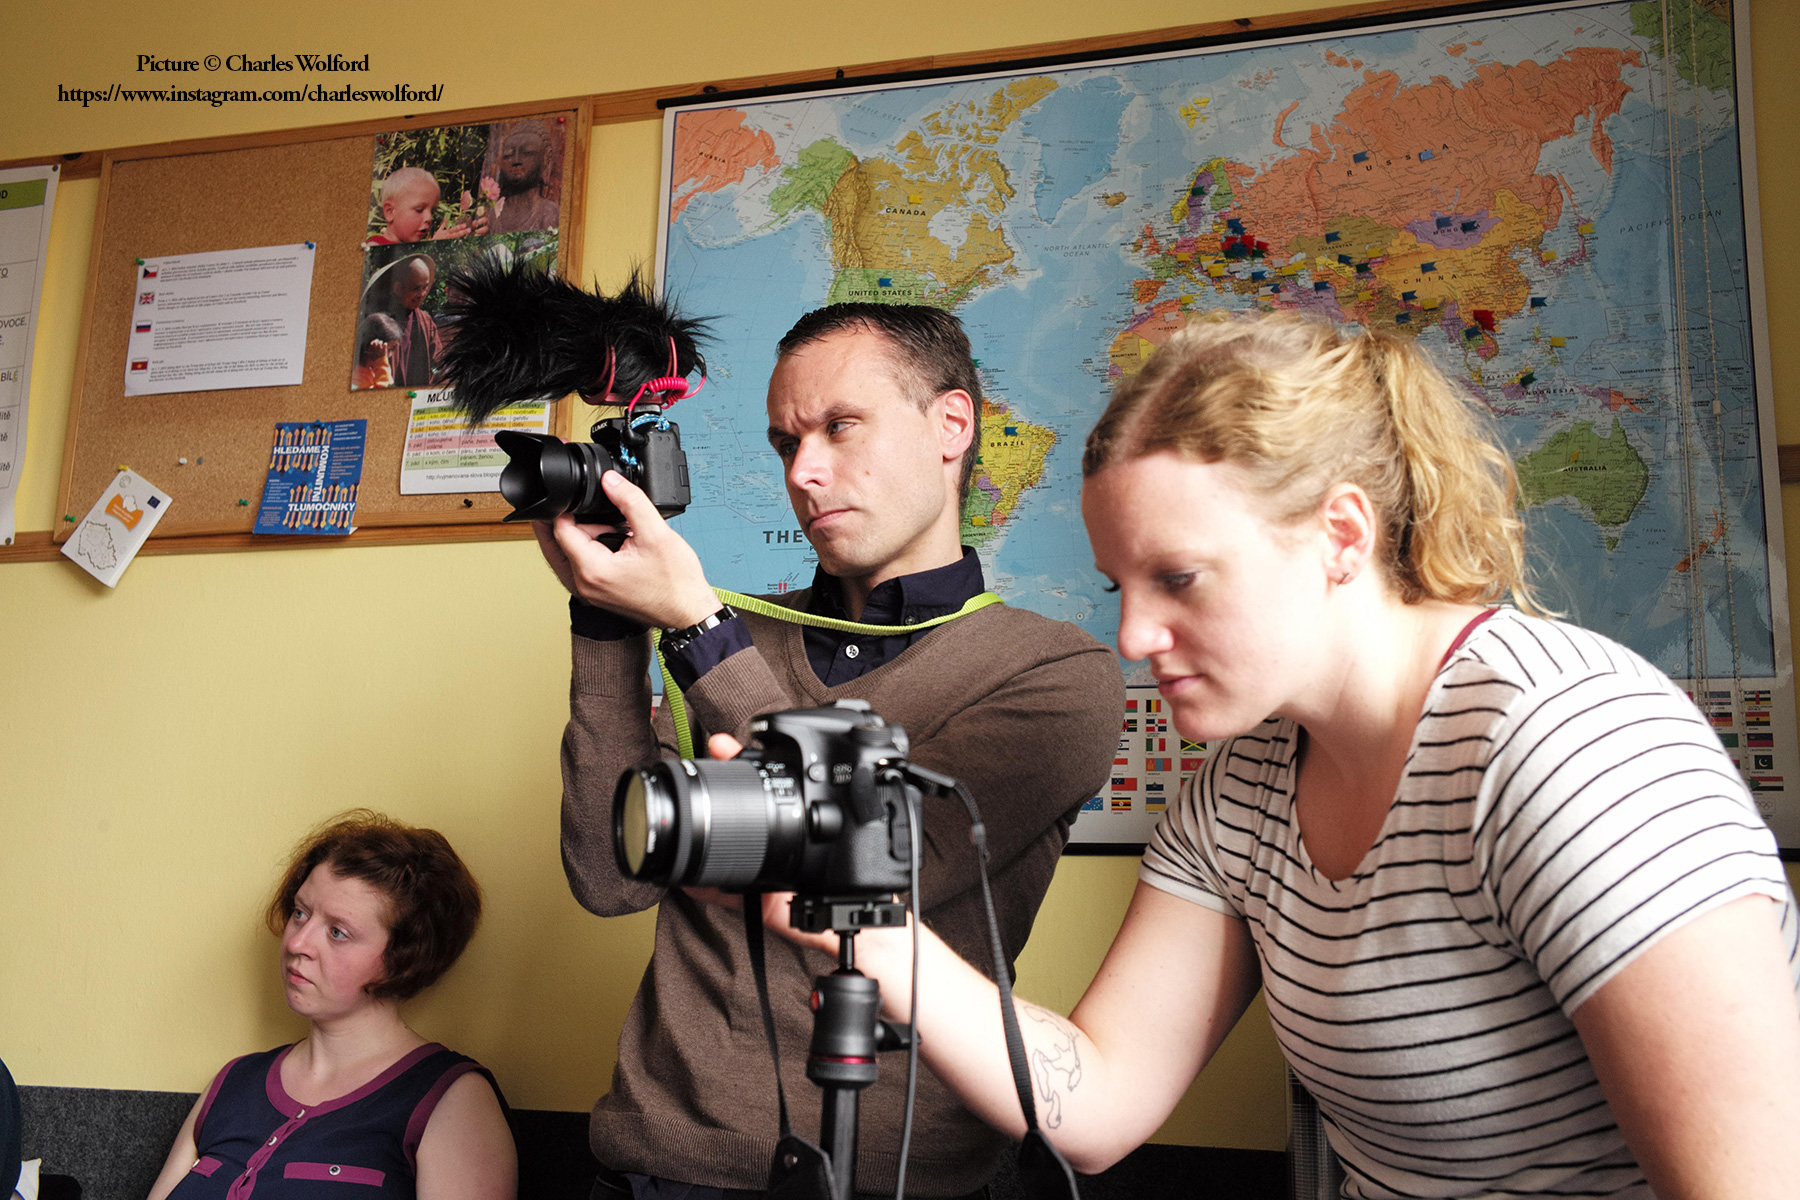 A snapshot from my time at a foreign correspondence workshop in Prague. Here, I am walking with the group filming an interview session in Plzen. Plzen, Czechia, July 2016. Picture by Charles Wolford.